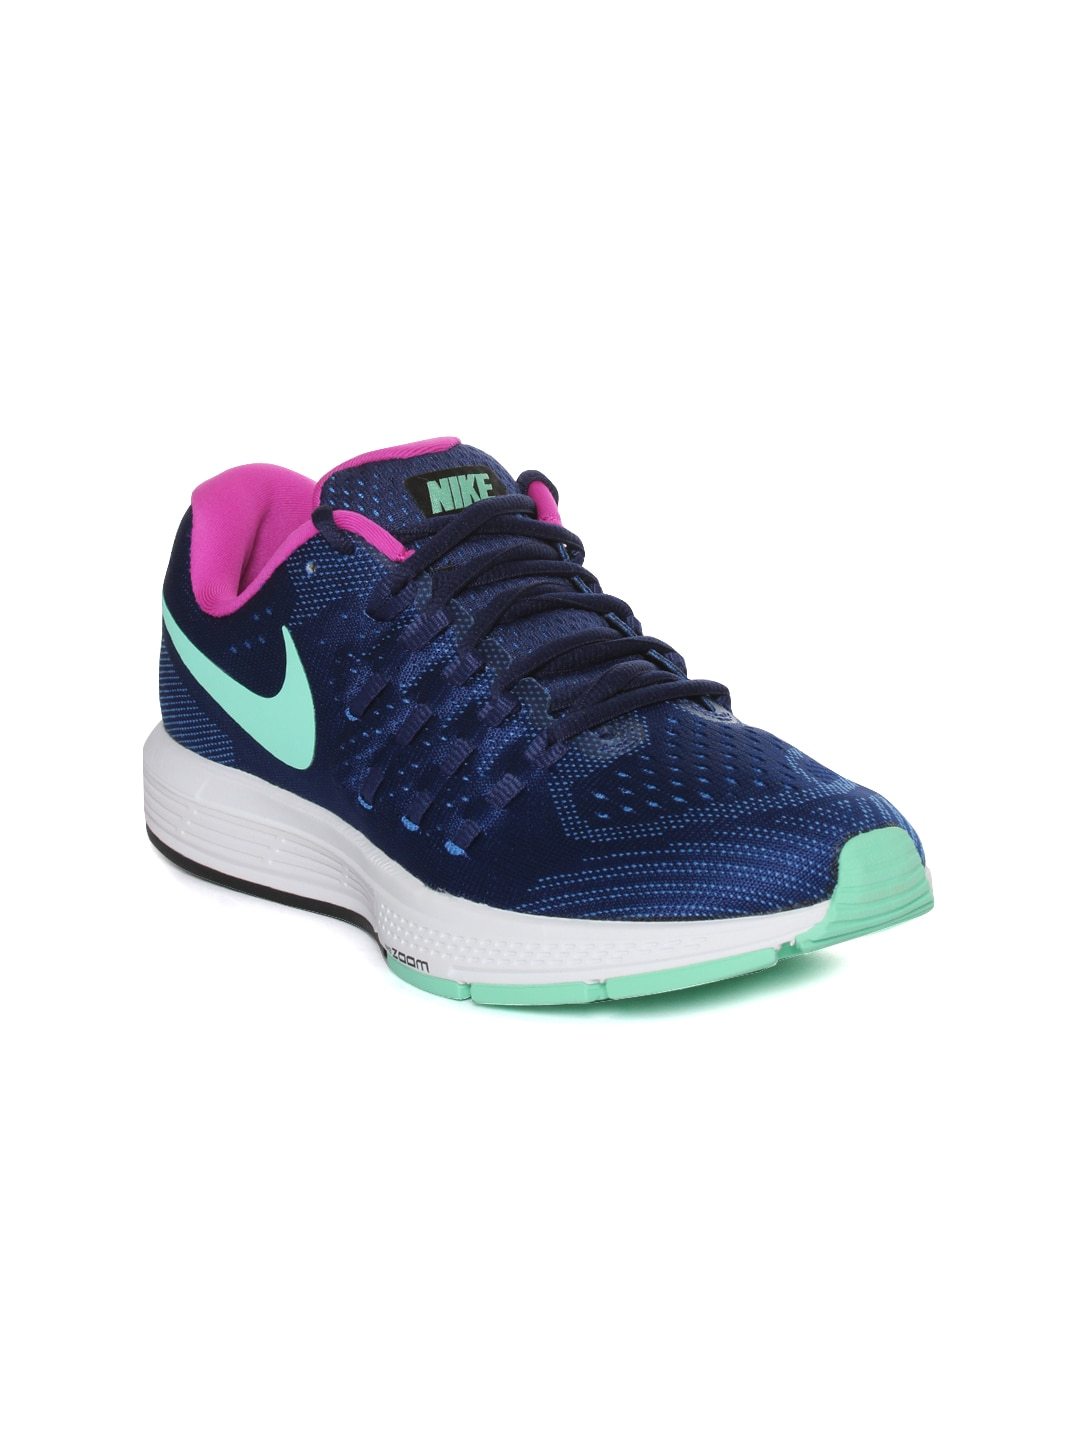 Nike 818100-402 Women Blue Air Zoom Vomero 11 Running Shoes- Price in India